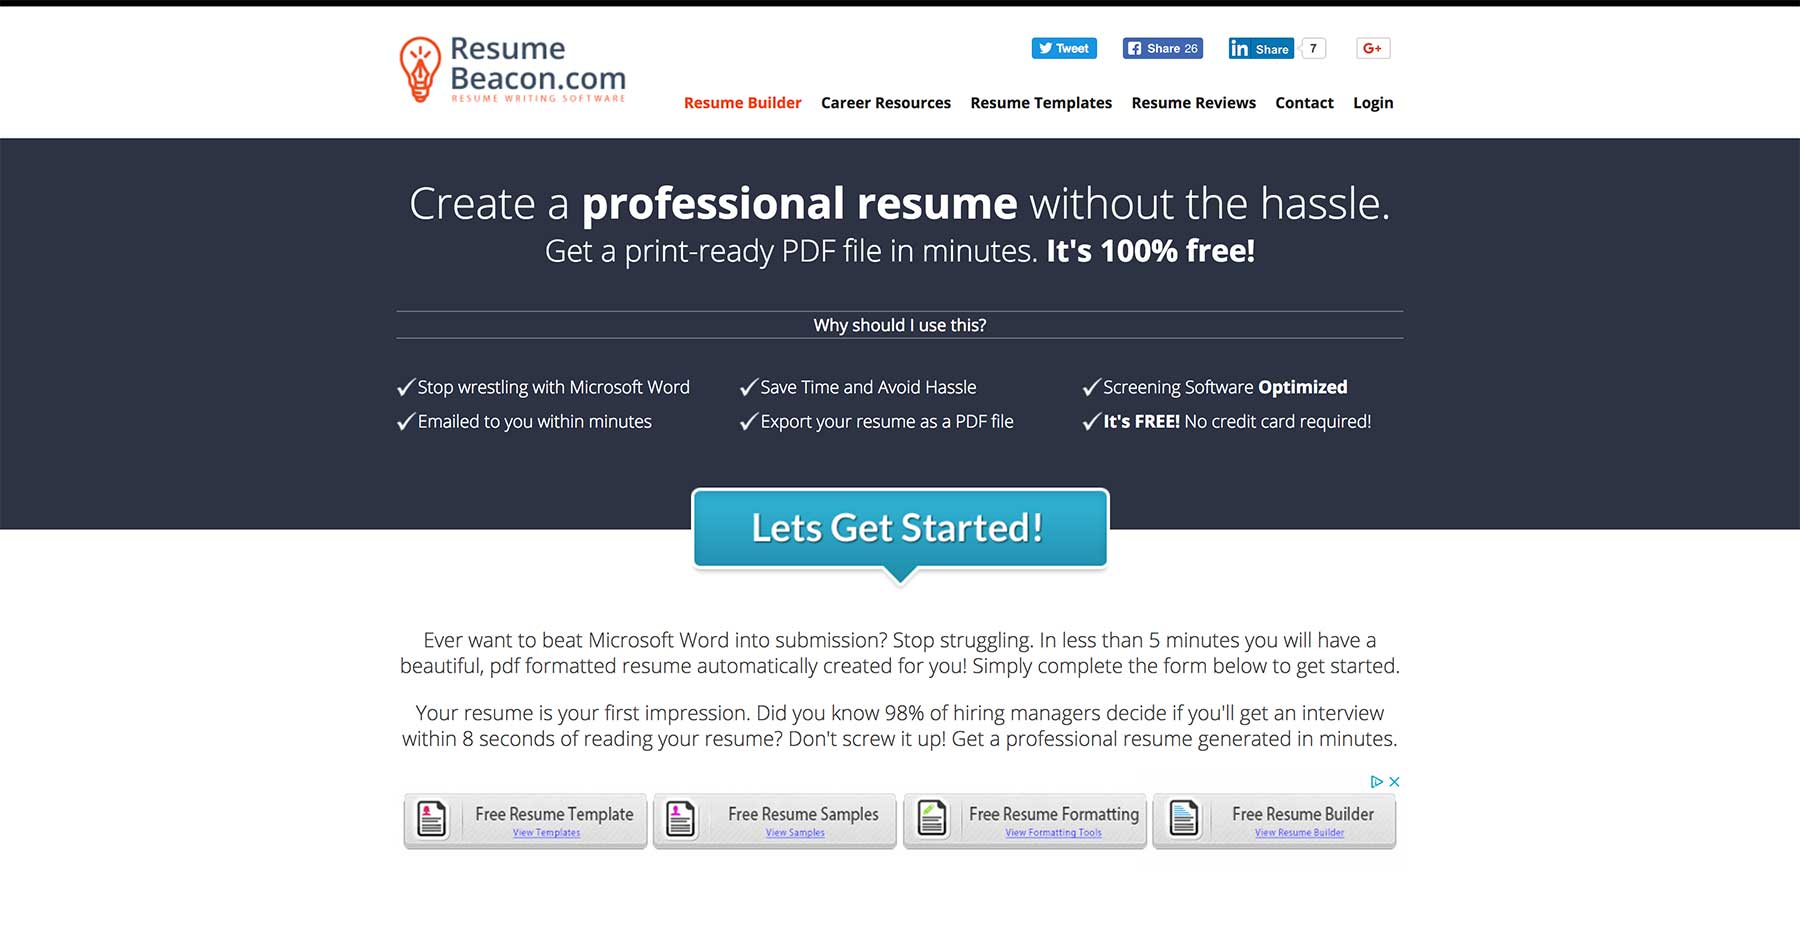 How To Create And Market A ResumeBuilding Service  Indie Hackers